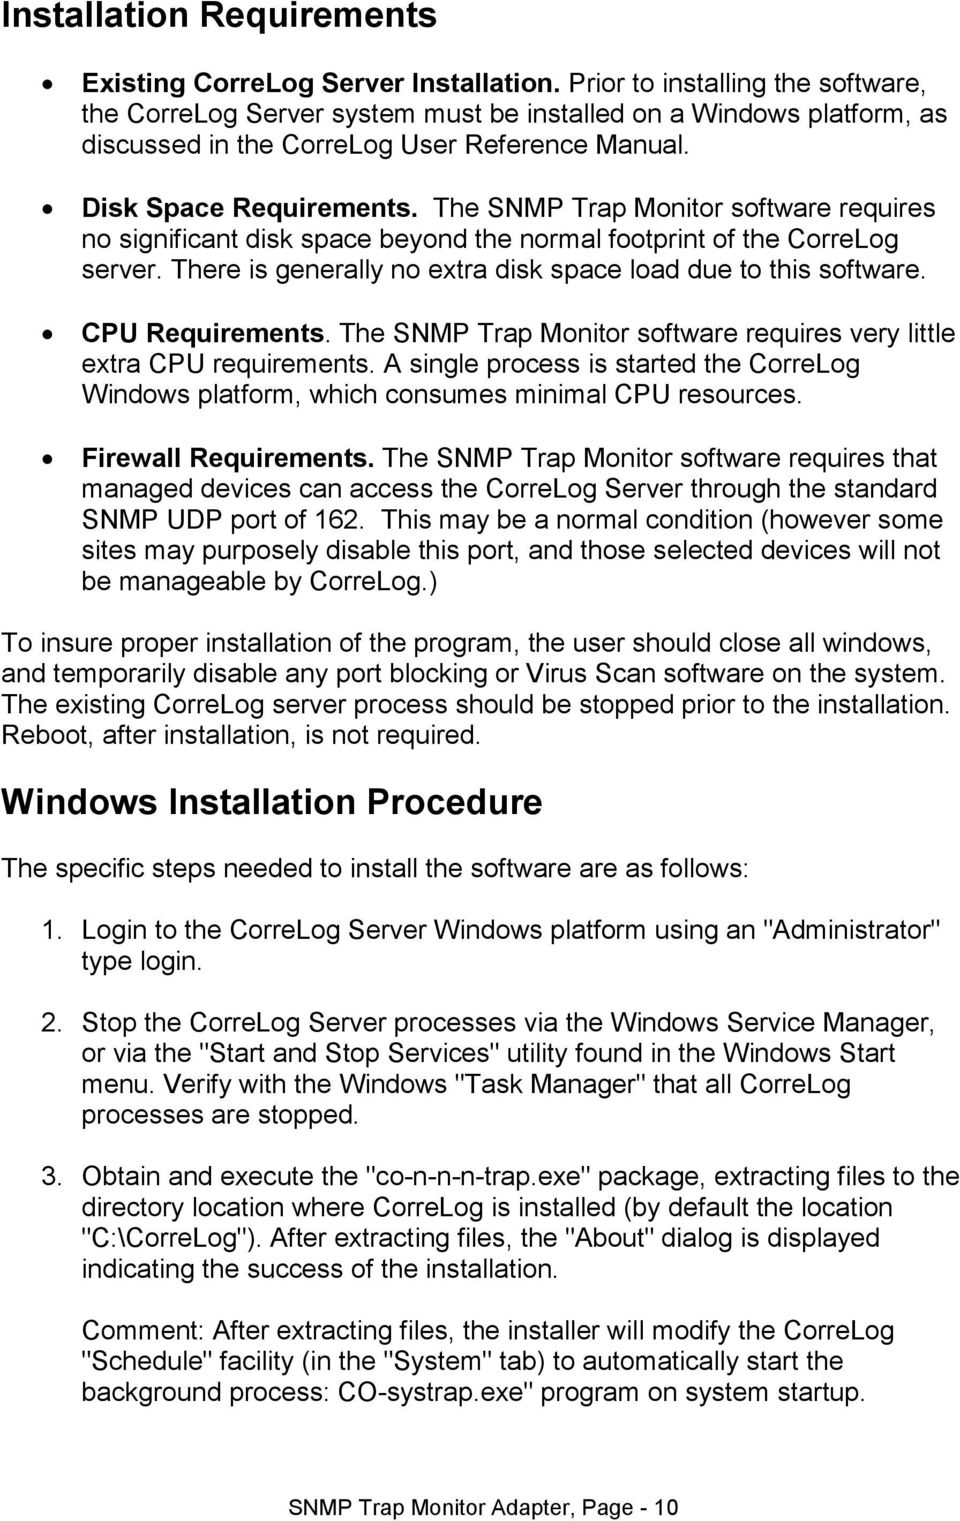 The SNMP Trap Monitor software requires no significant disk space beyond the normal footprint of the CorreLog server. There is generally no extra disk space load due to this software.